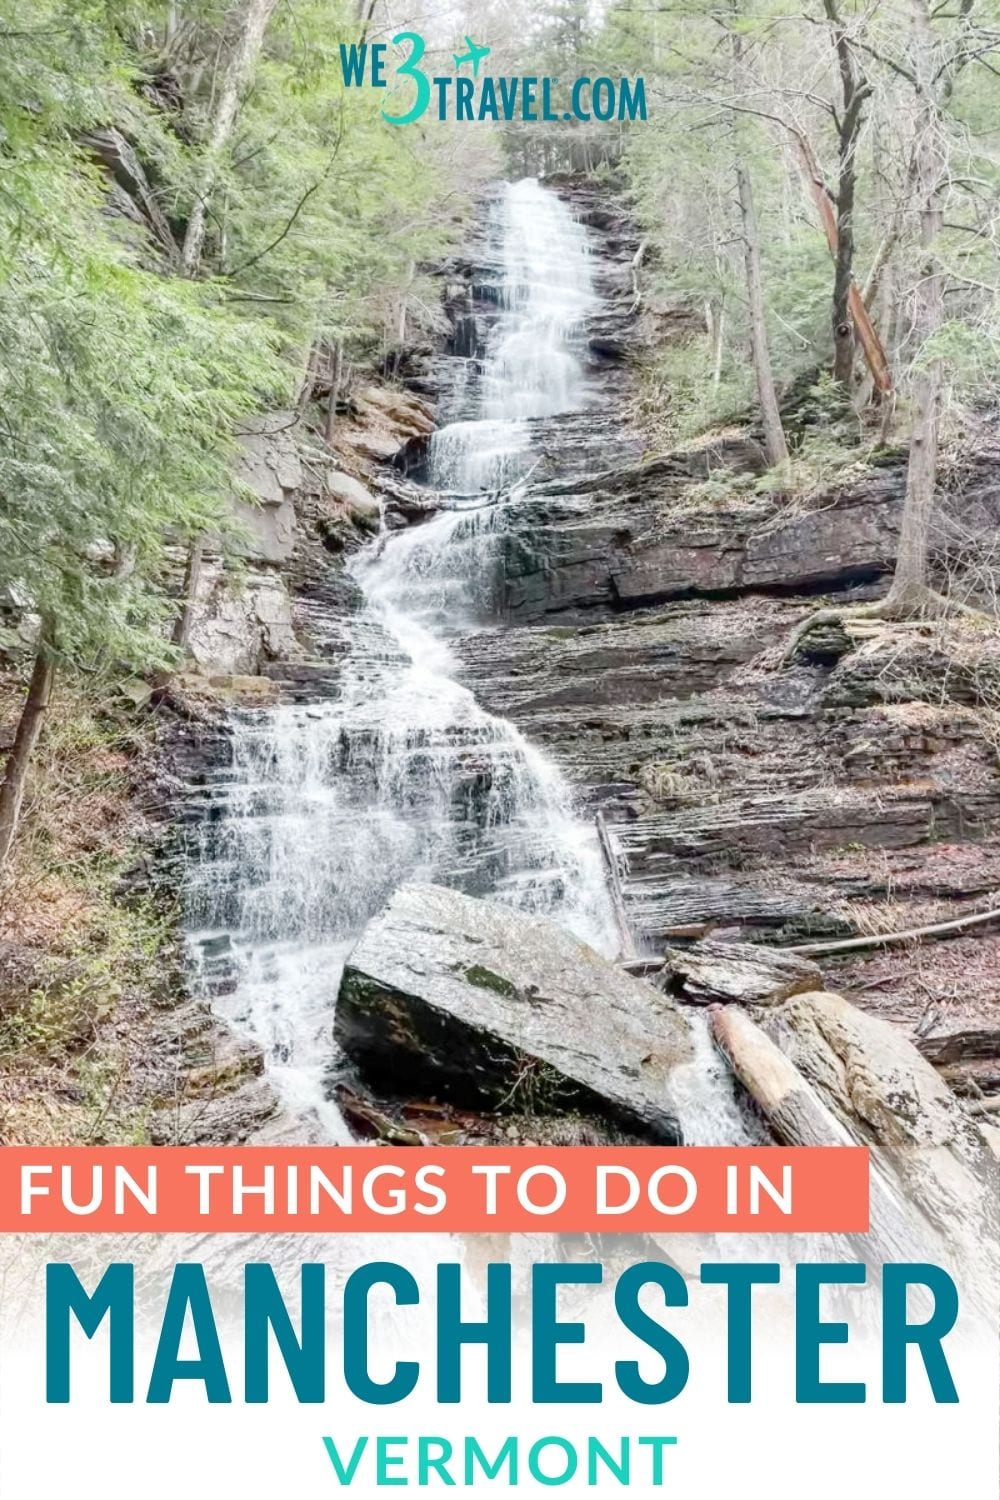 Fun things to do in Manchester Vermont pinterest image with Lye Brook waterfall